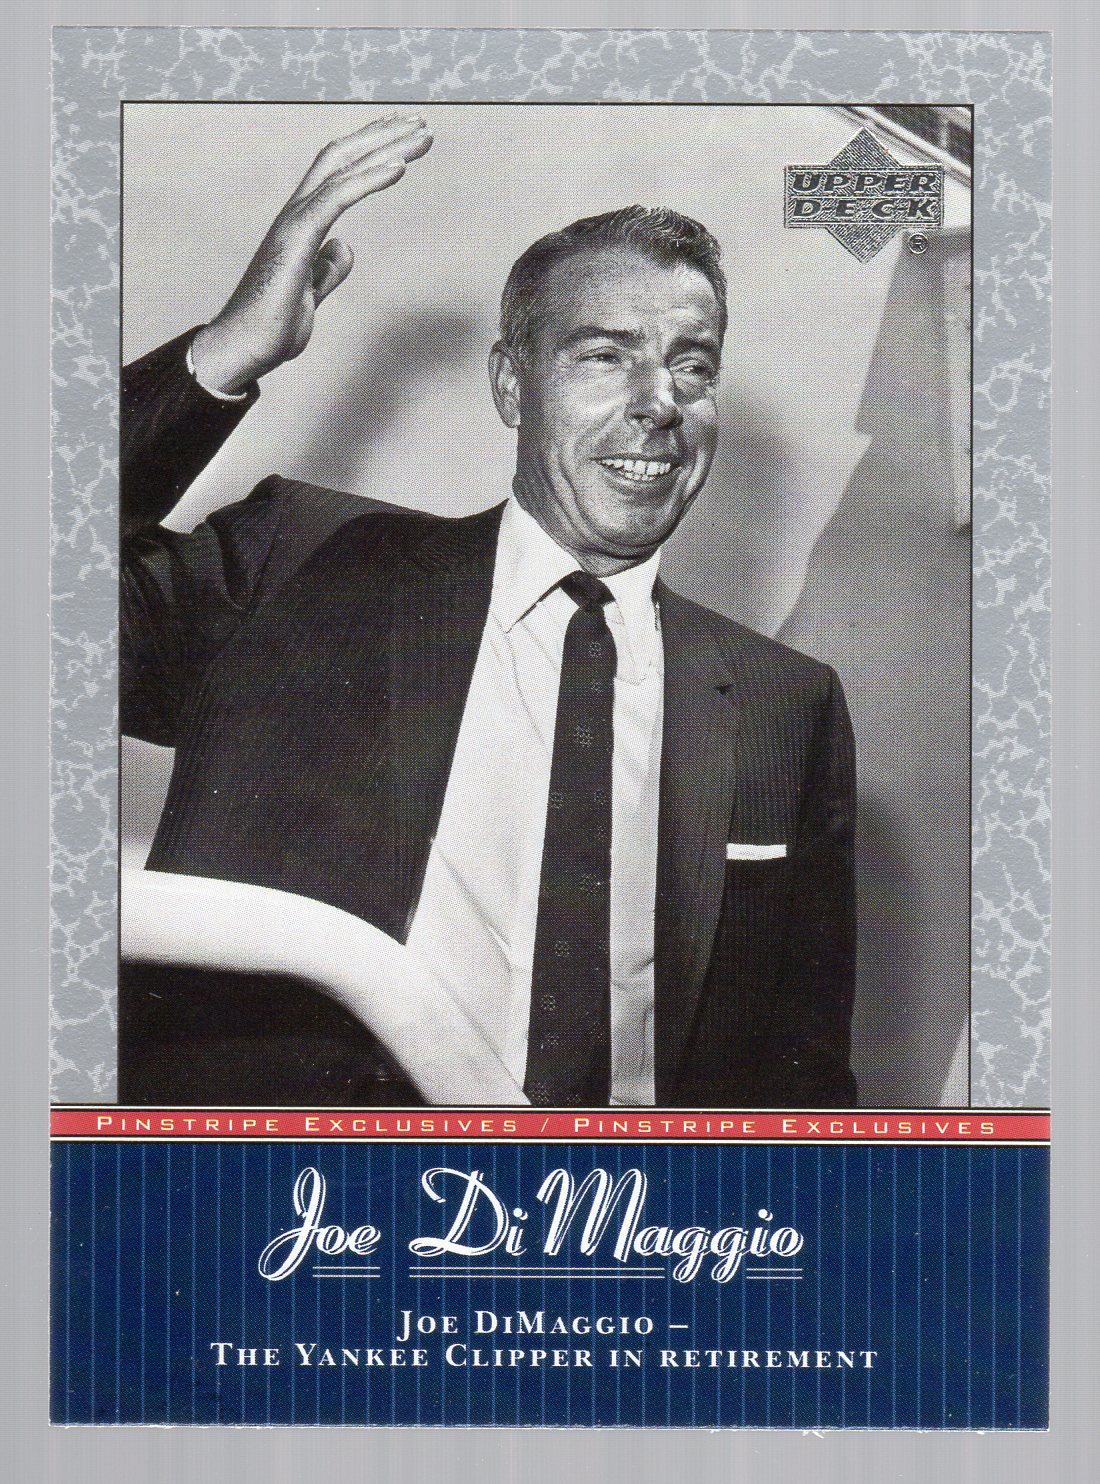 2001 Upper Deck Pinstripe Exclusives DiMaggio #JD44 Joe DiMaggio